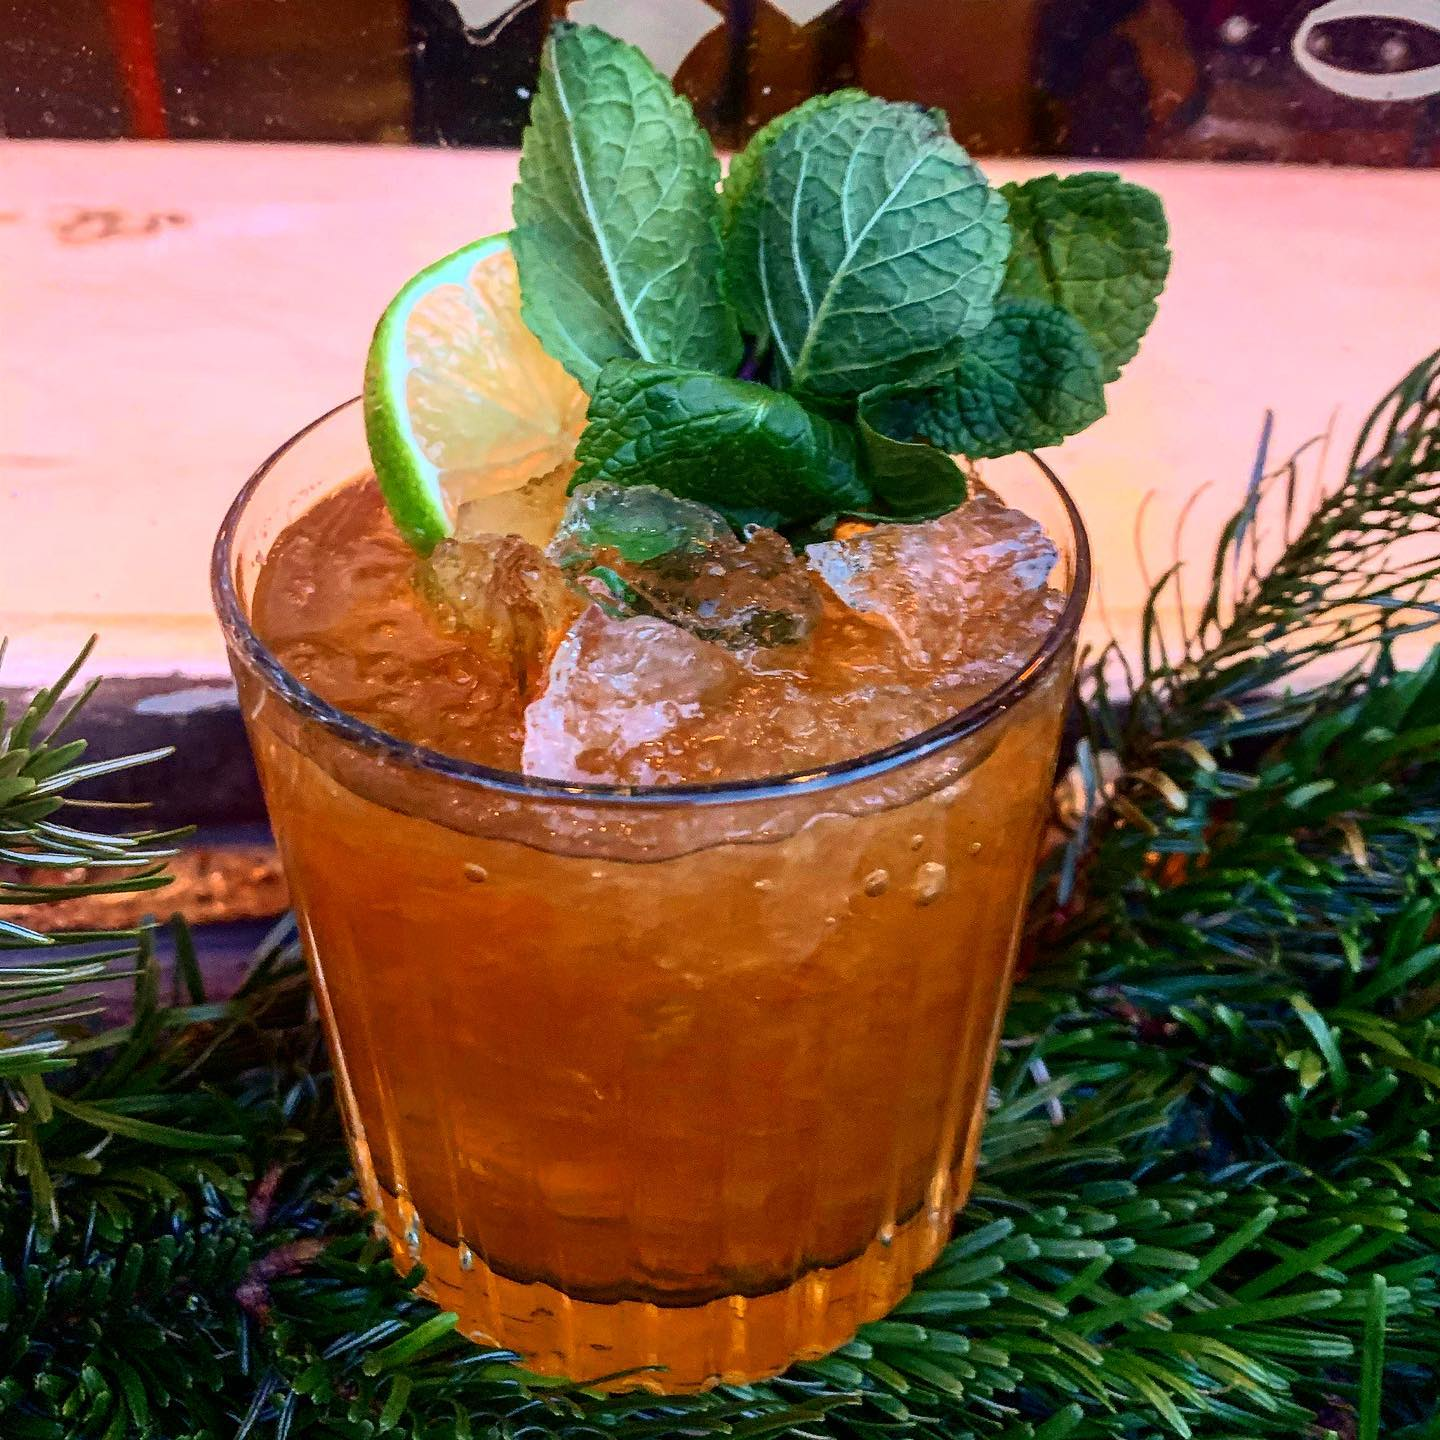 Veckans cocktail :Kingston Stinger -Rom, Fernet Branca, Lime/Ginger syrup,Lime #cocktail#cocktails